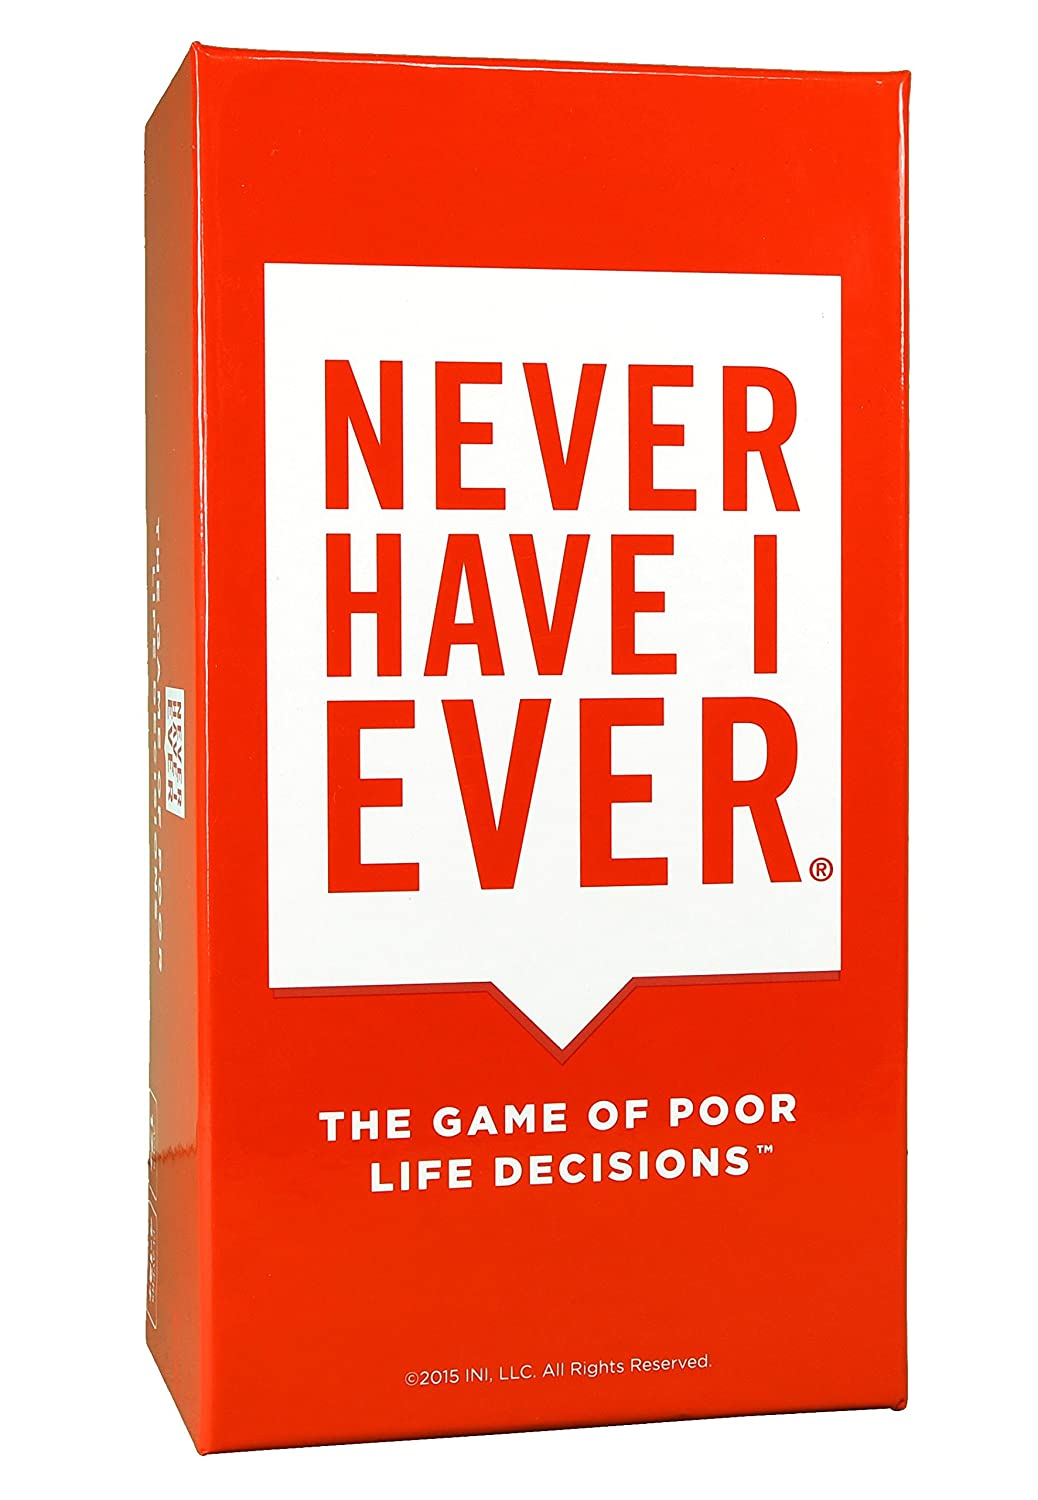 Amazon.com: Never Have I Ever Best Card Game & Party Game for ...